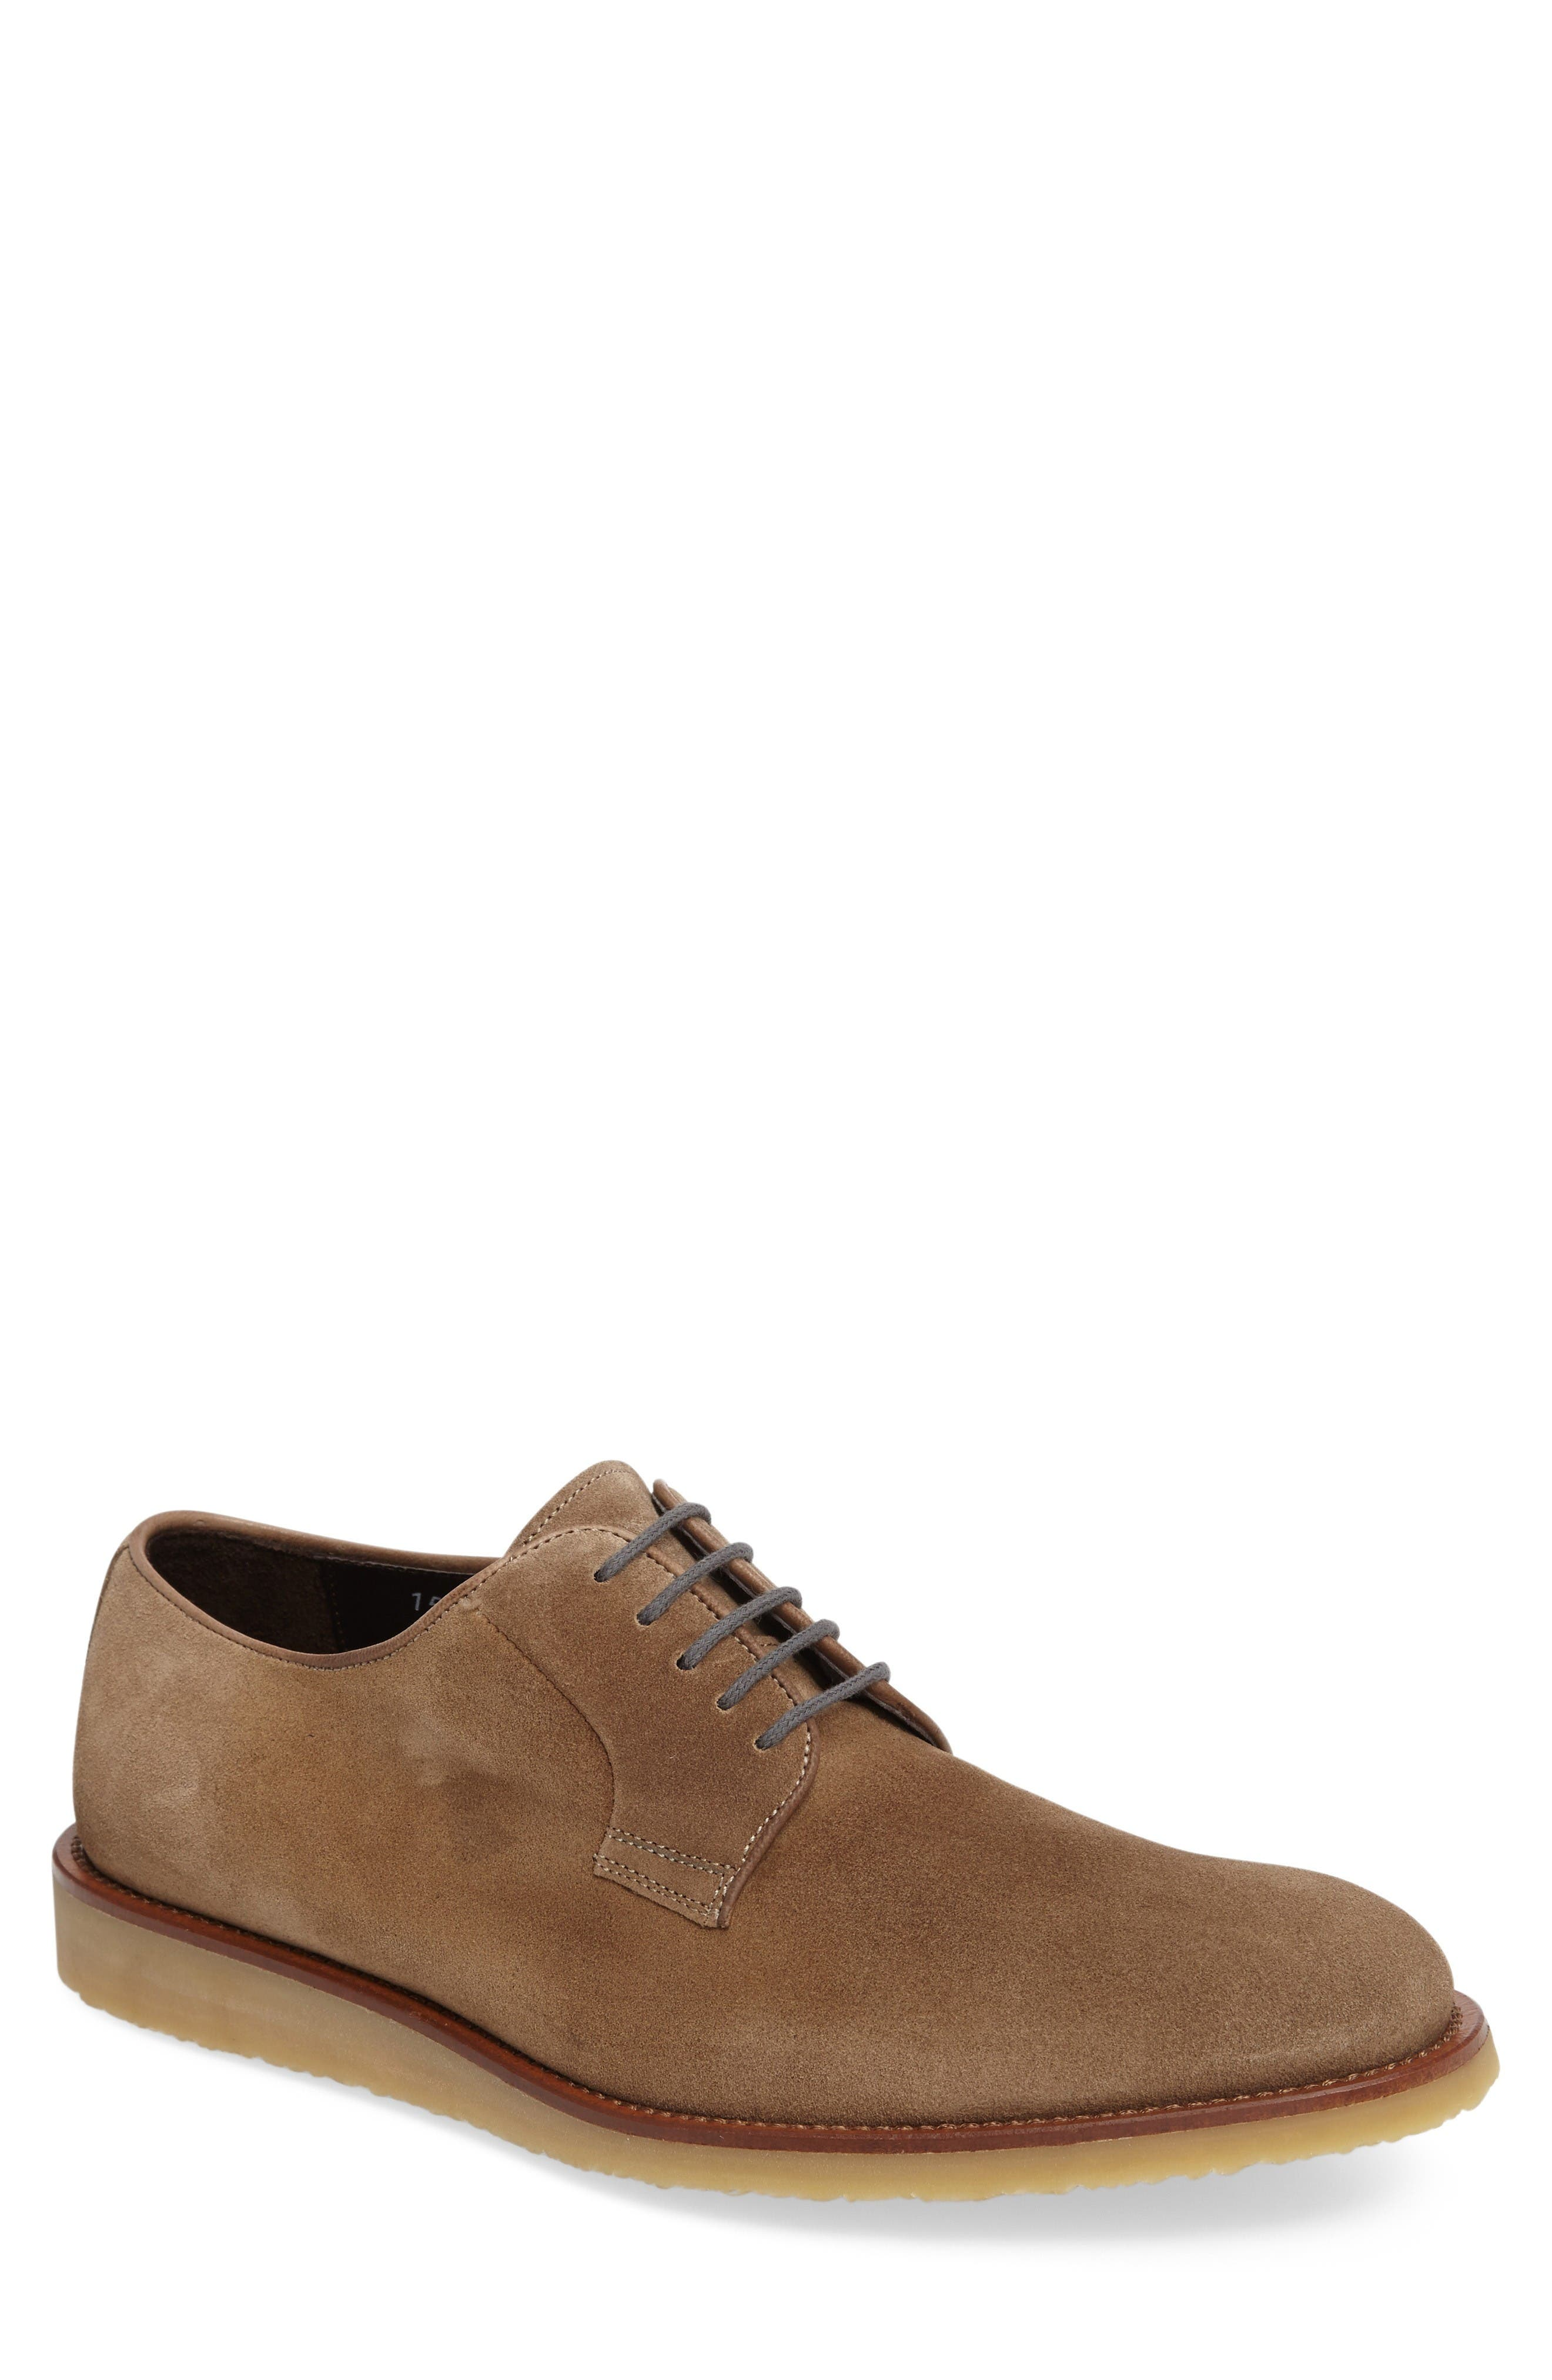 Alternate Image 3  - To Boot New York Jack Buck Shoe (Men)